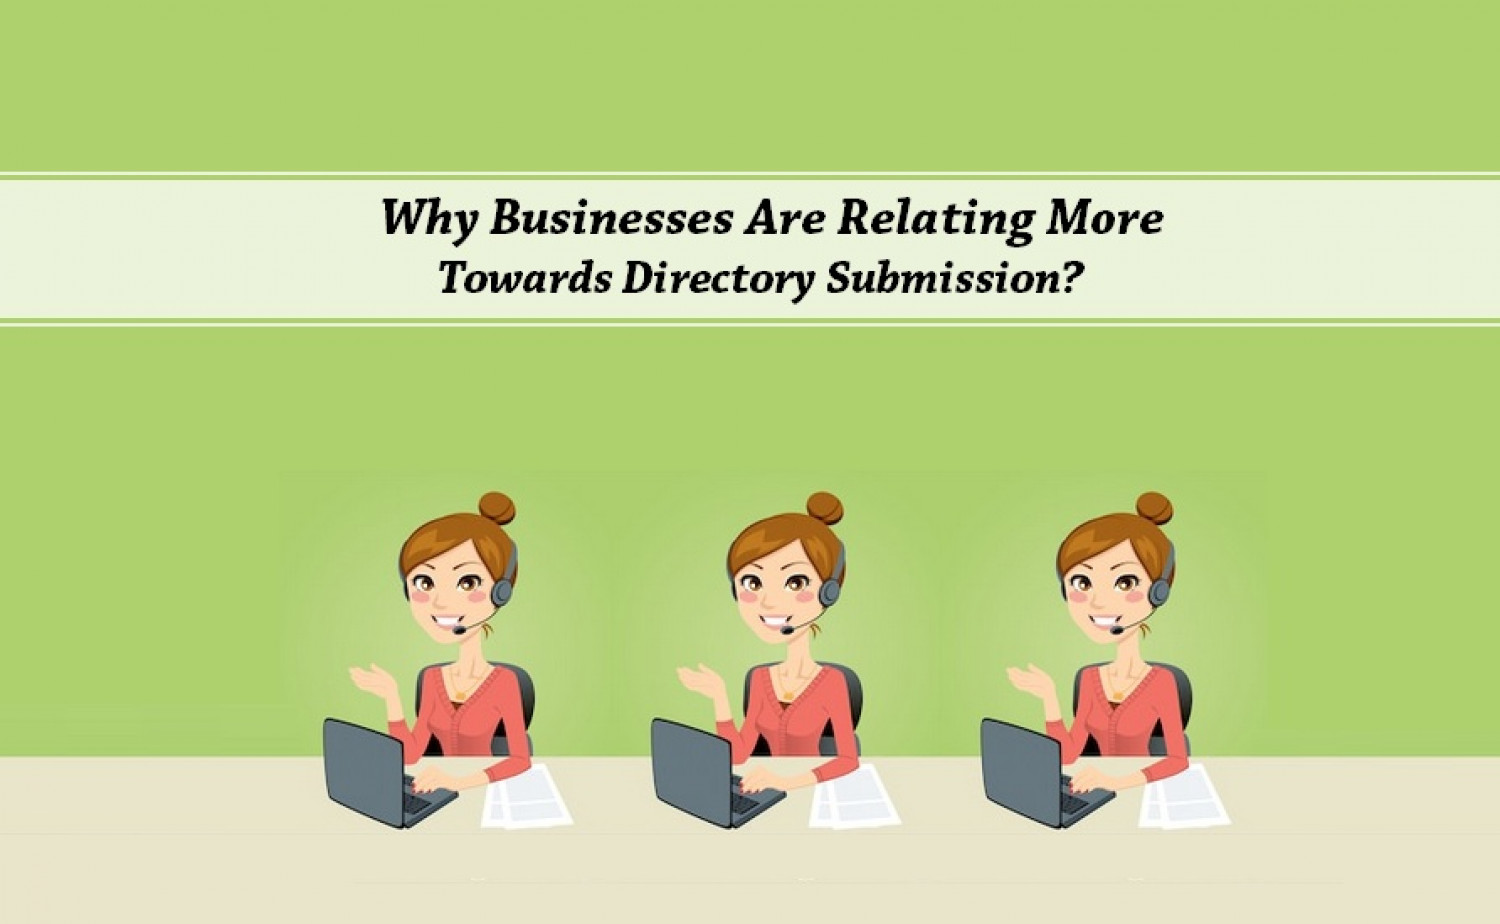 Businesses Are Relating More Towards Directory Submission Infographic